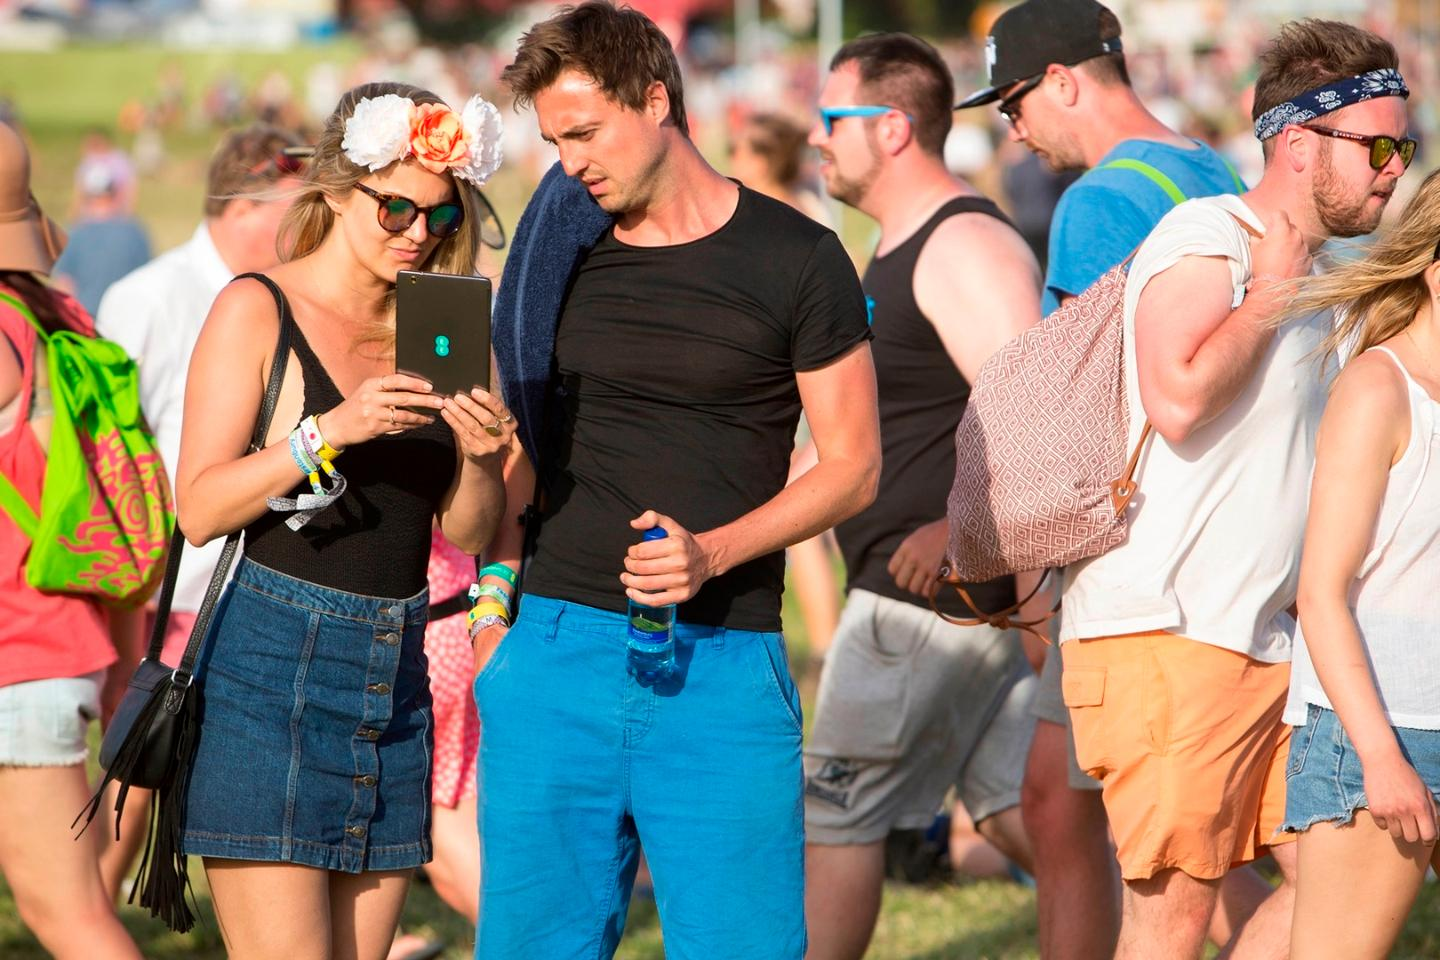 Glastonbury's communications partner EEhad expected 15 TB of data to be consumed